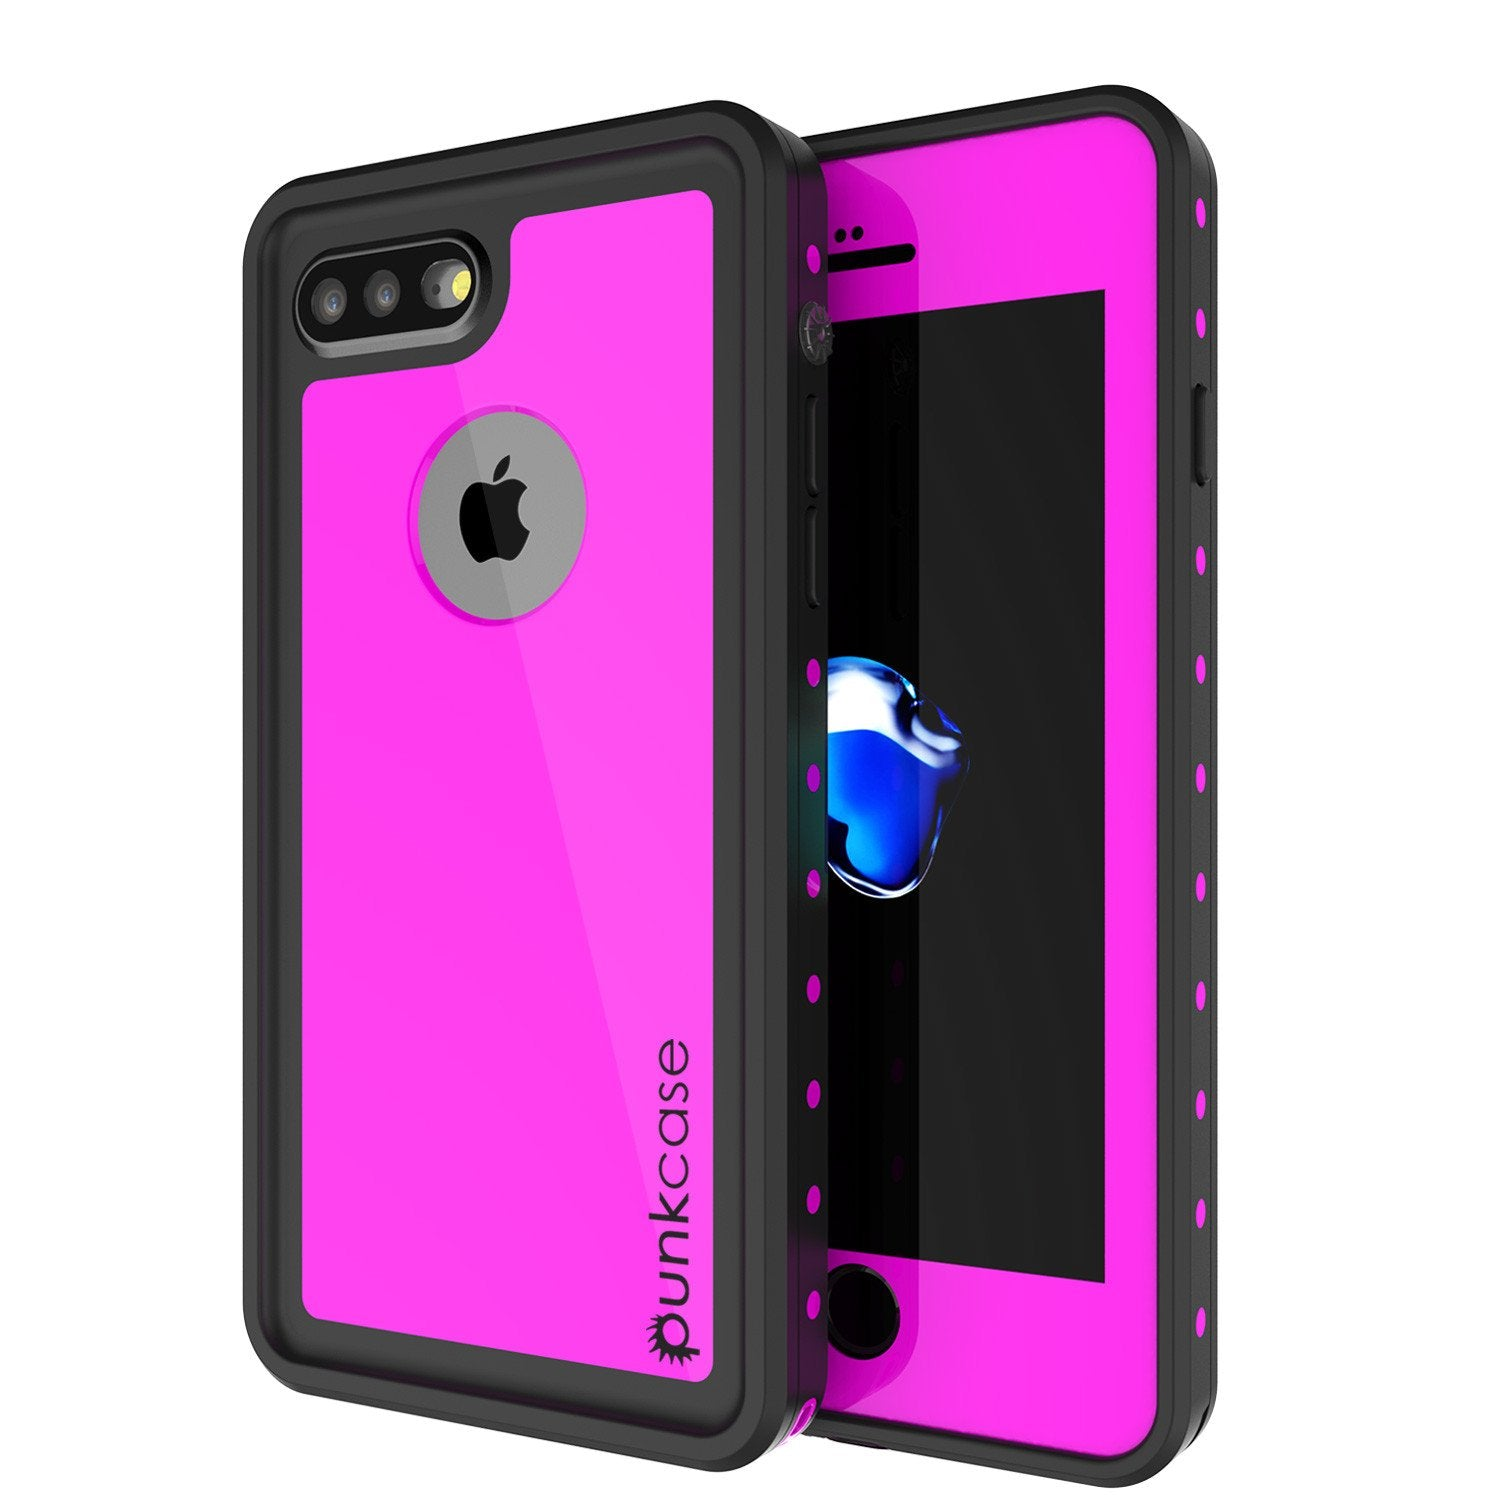 iPhone 8+ Plus Waterproof IP68 Case, Punkcase [Pink] [StudStar Series] [Slim Fit] [Dirtproof]